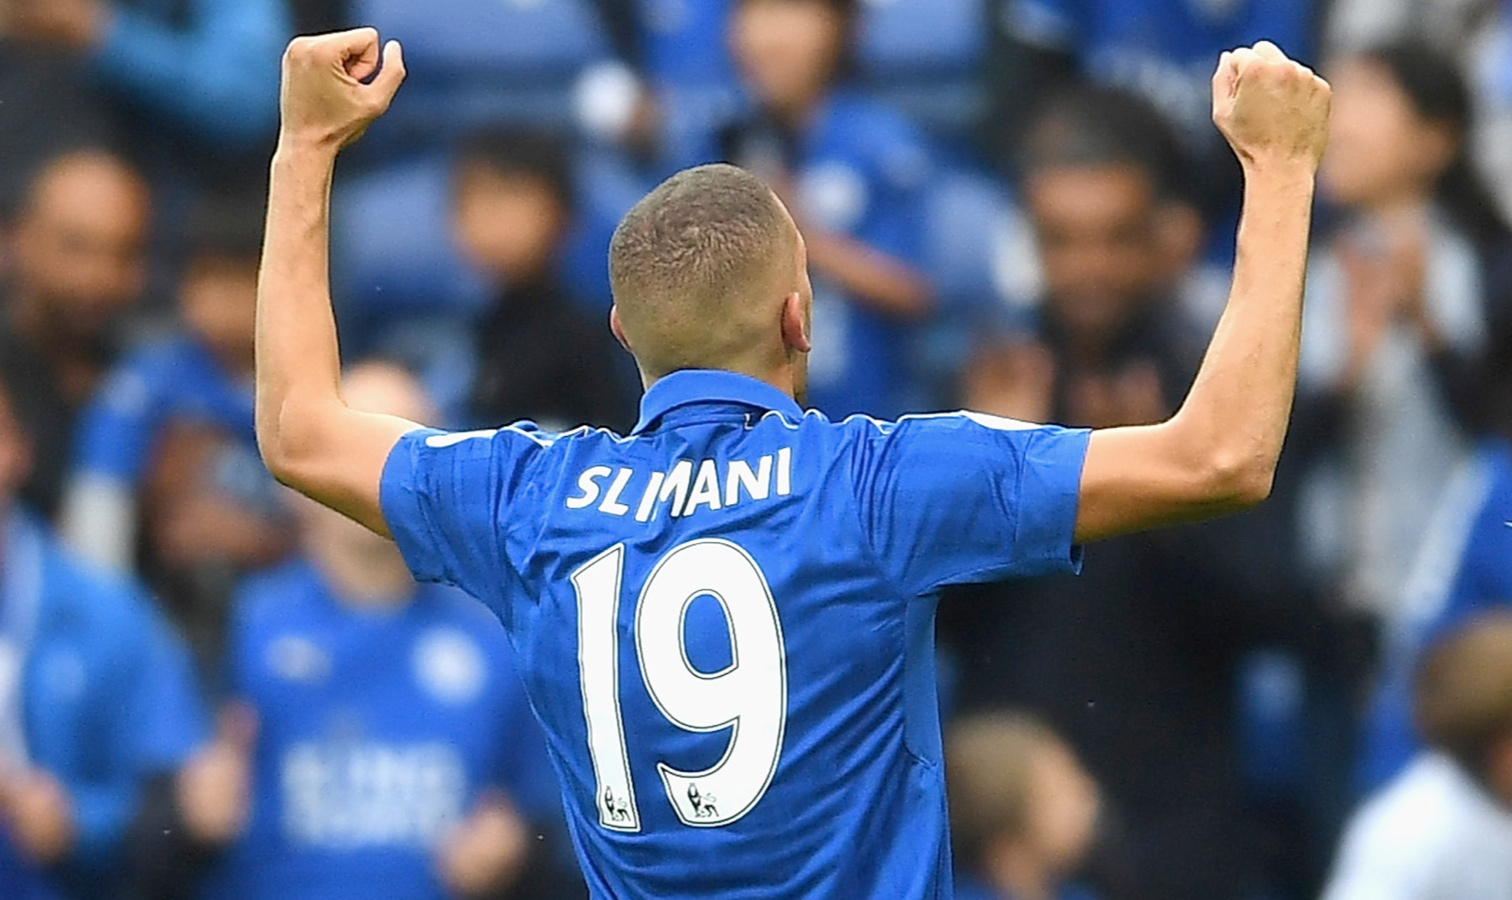 slimani dos leicester